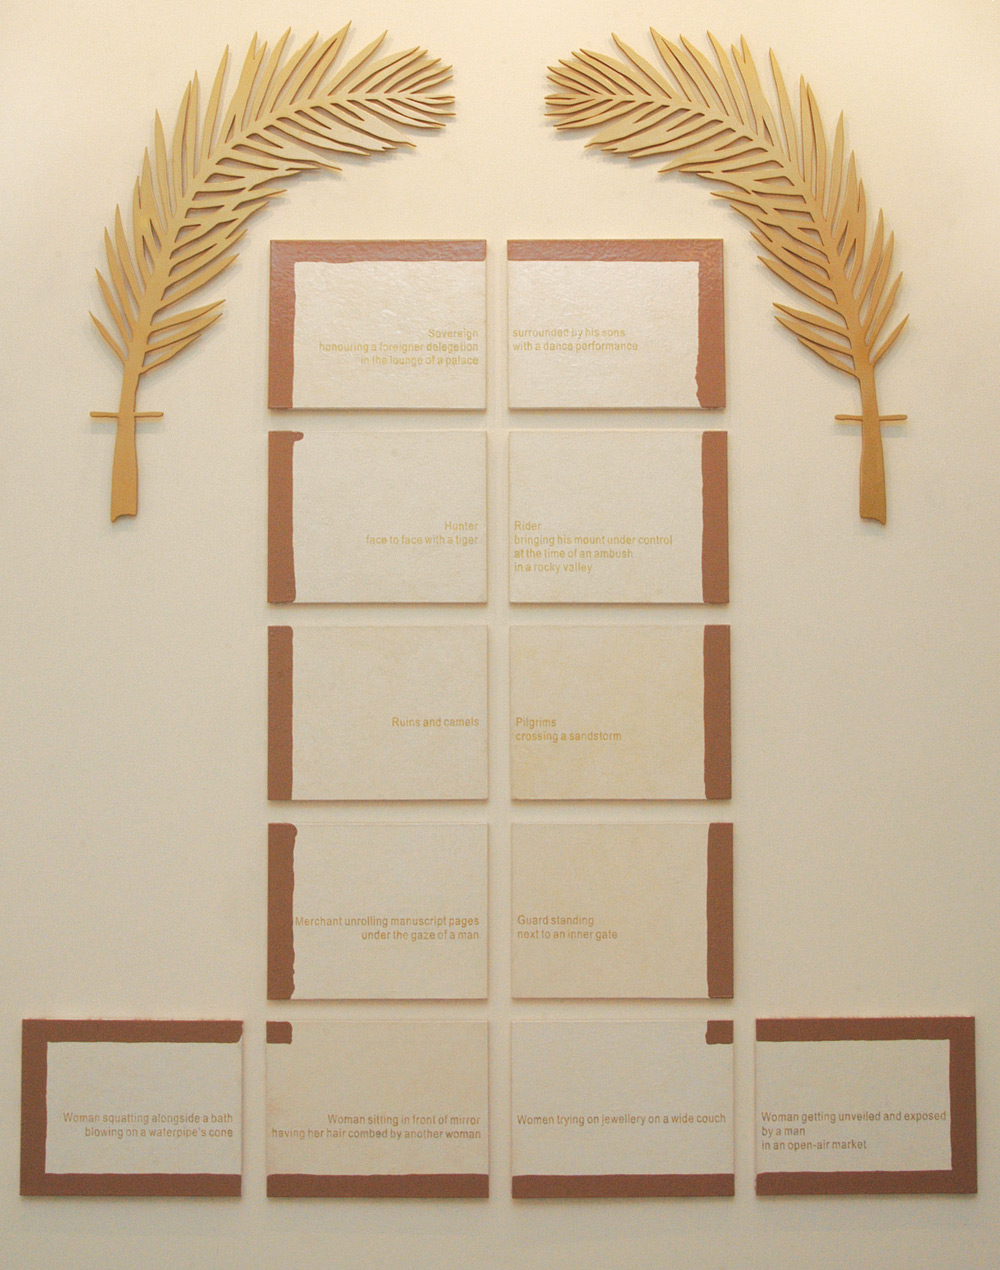 La célébration du motif (une collection rêvée) 2005, Mixed media, Twelve canvas topped with two golden PVC palm leaves Approx. 243 x 202.6cm